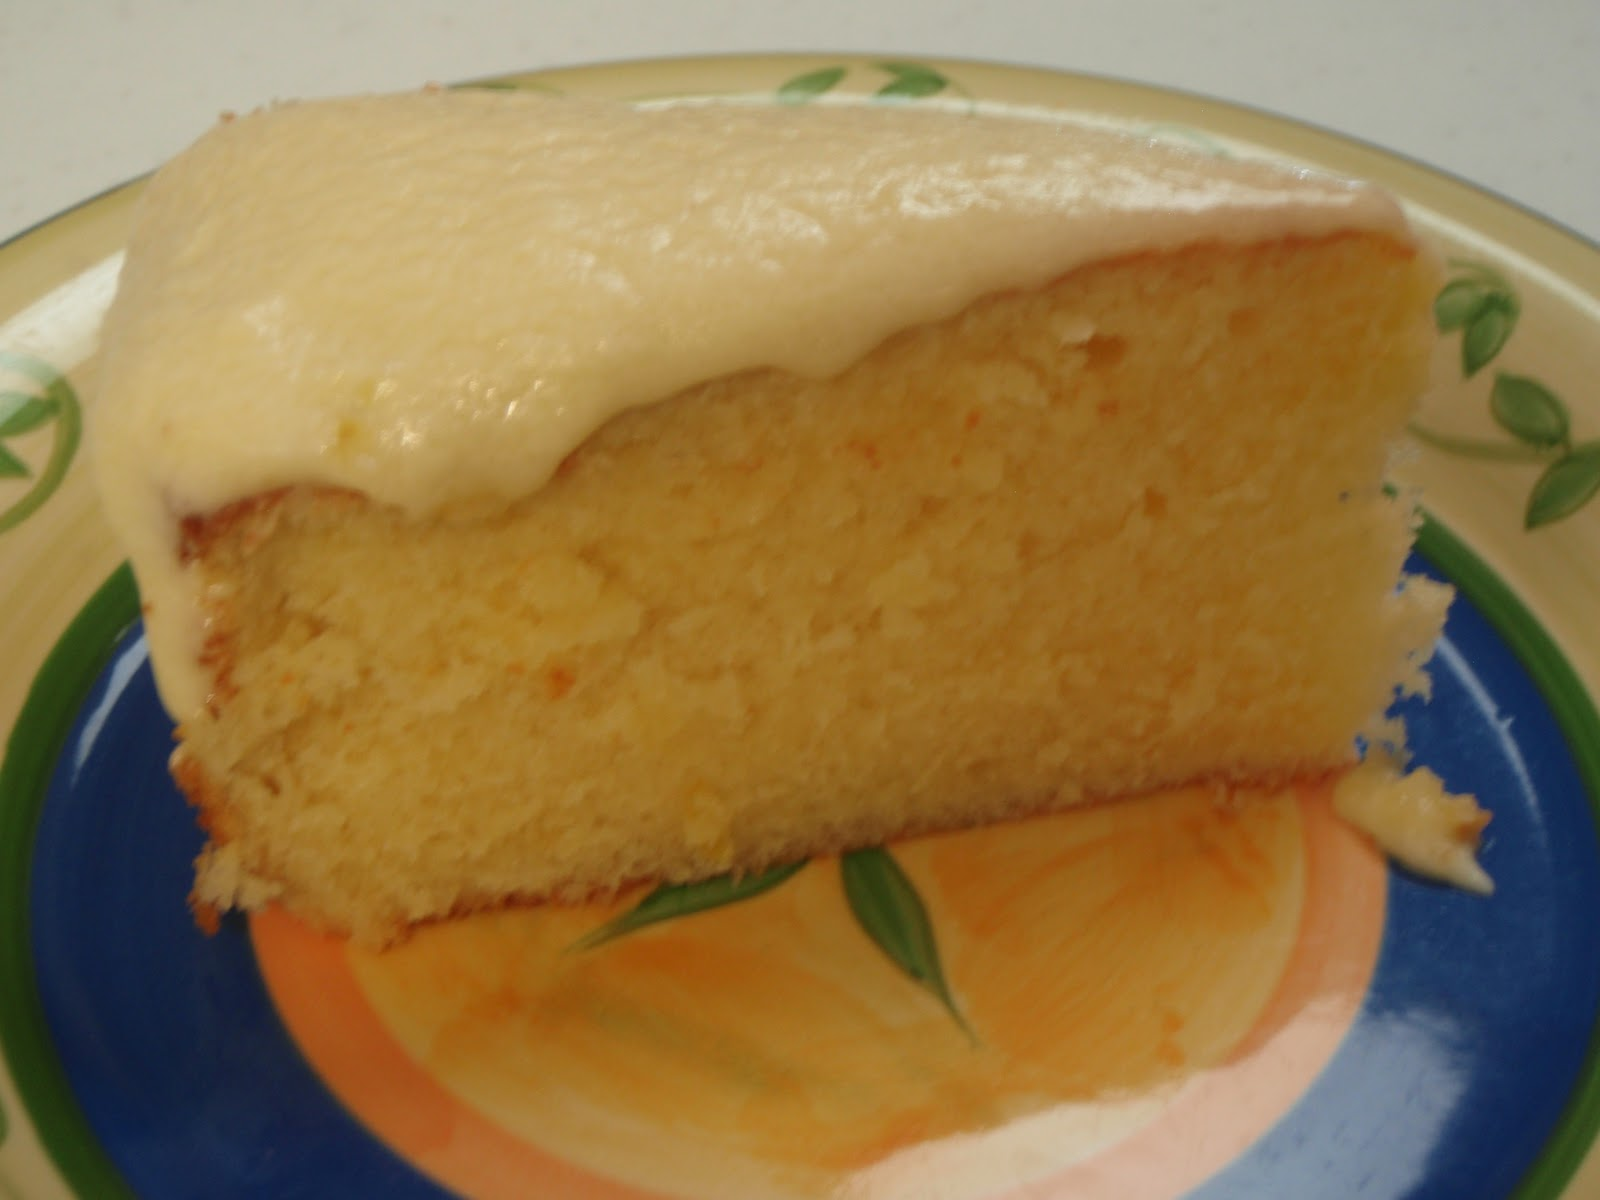 Beautiful Lemon Cake Images : Musings of Another Mother: Beautiful Butter Cake with ...